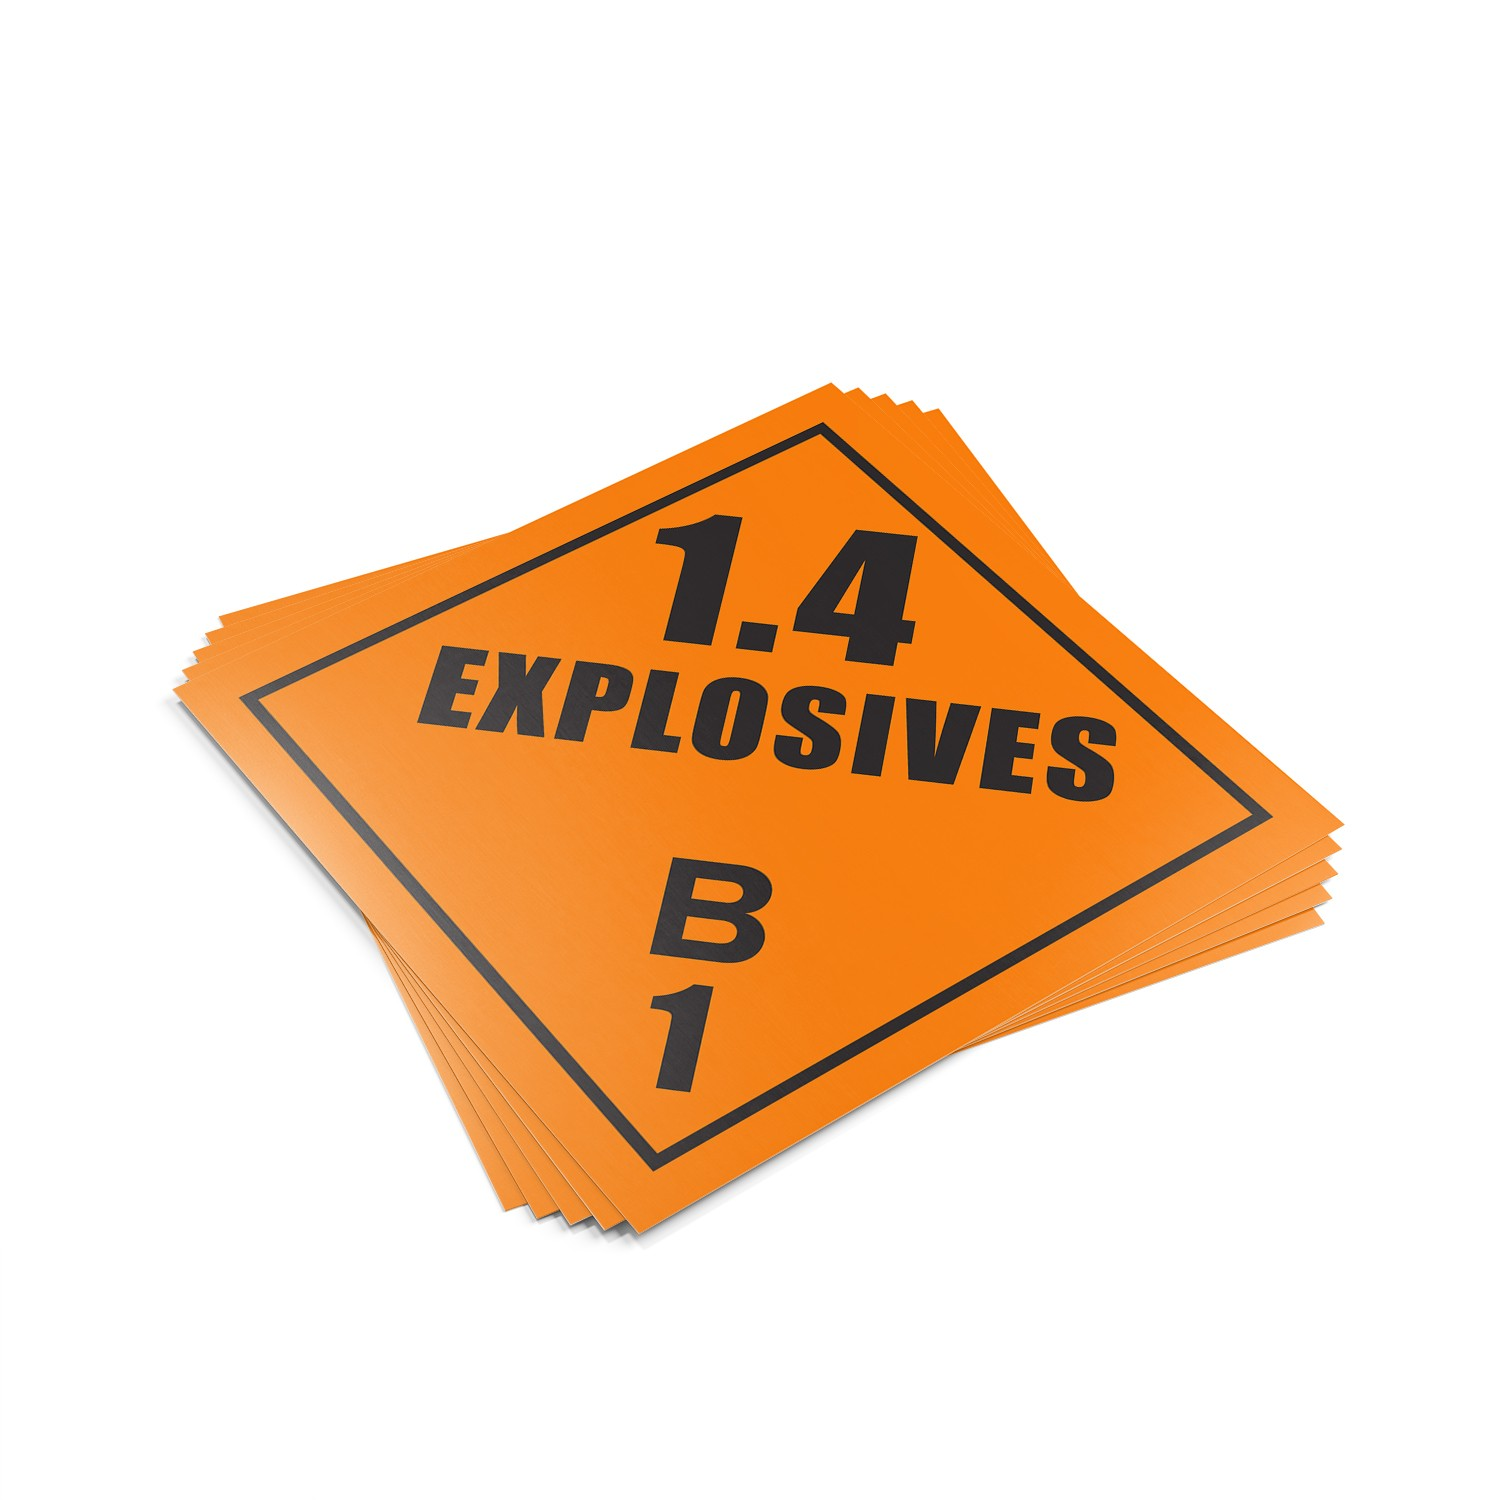 "TOTALPACK® 10 3/4 x 10 3/4"" - Placard ""Explosives 1.4 B"" 25 Units"